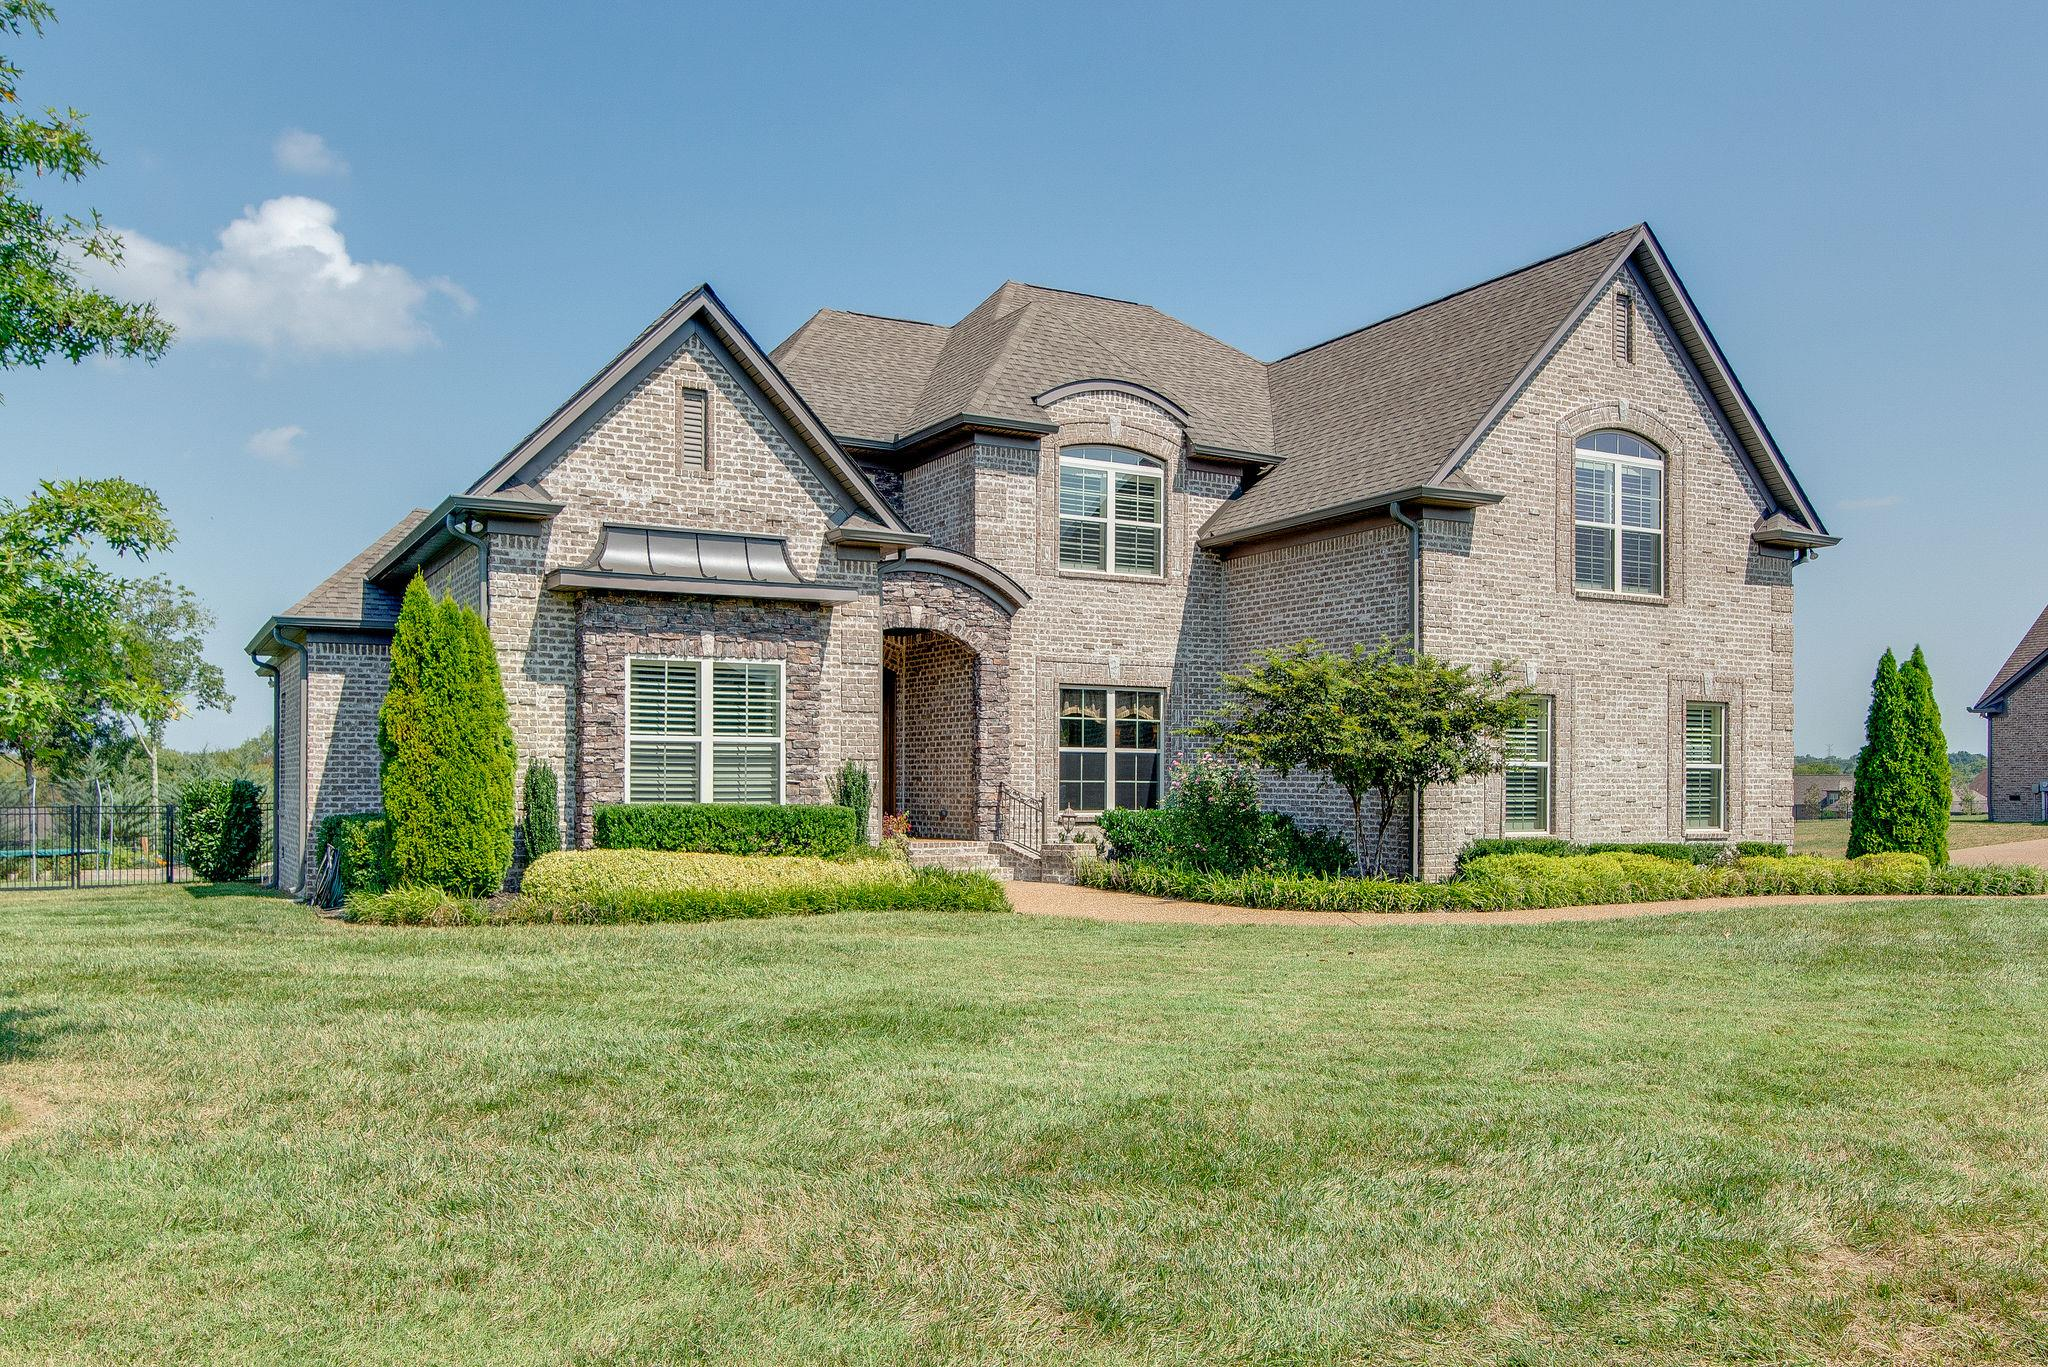 108 Wembly Ln, Mount Juliet, TN 37122 - Mount Juliet, TN real estate listing